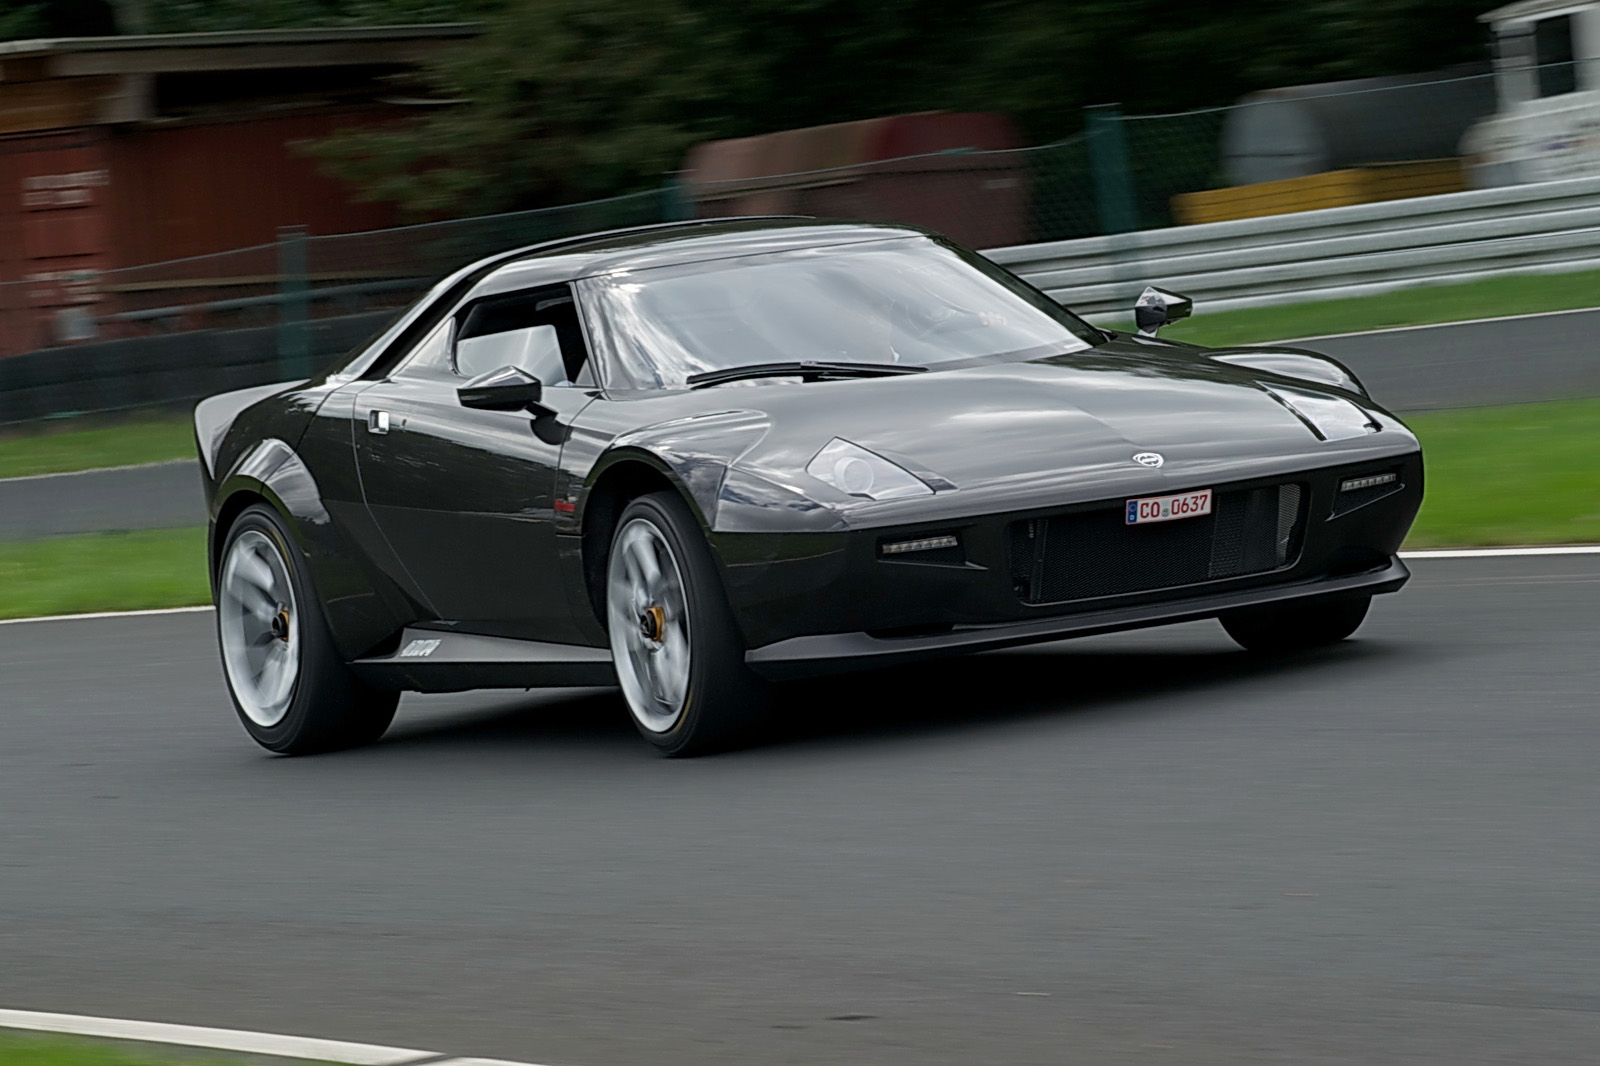 New Lancia Stratos Full Specs and Performance Figures Released ...